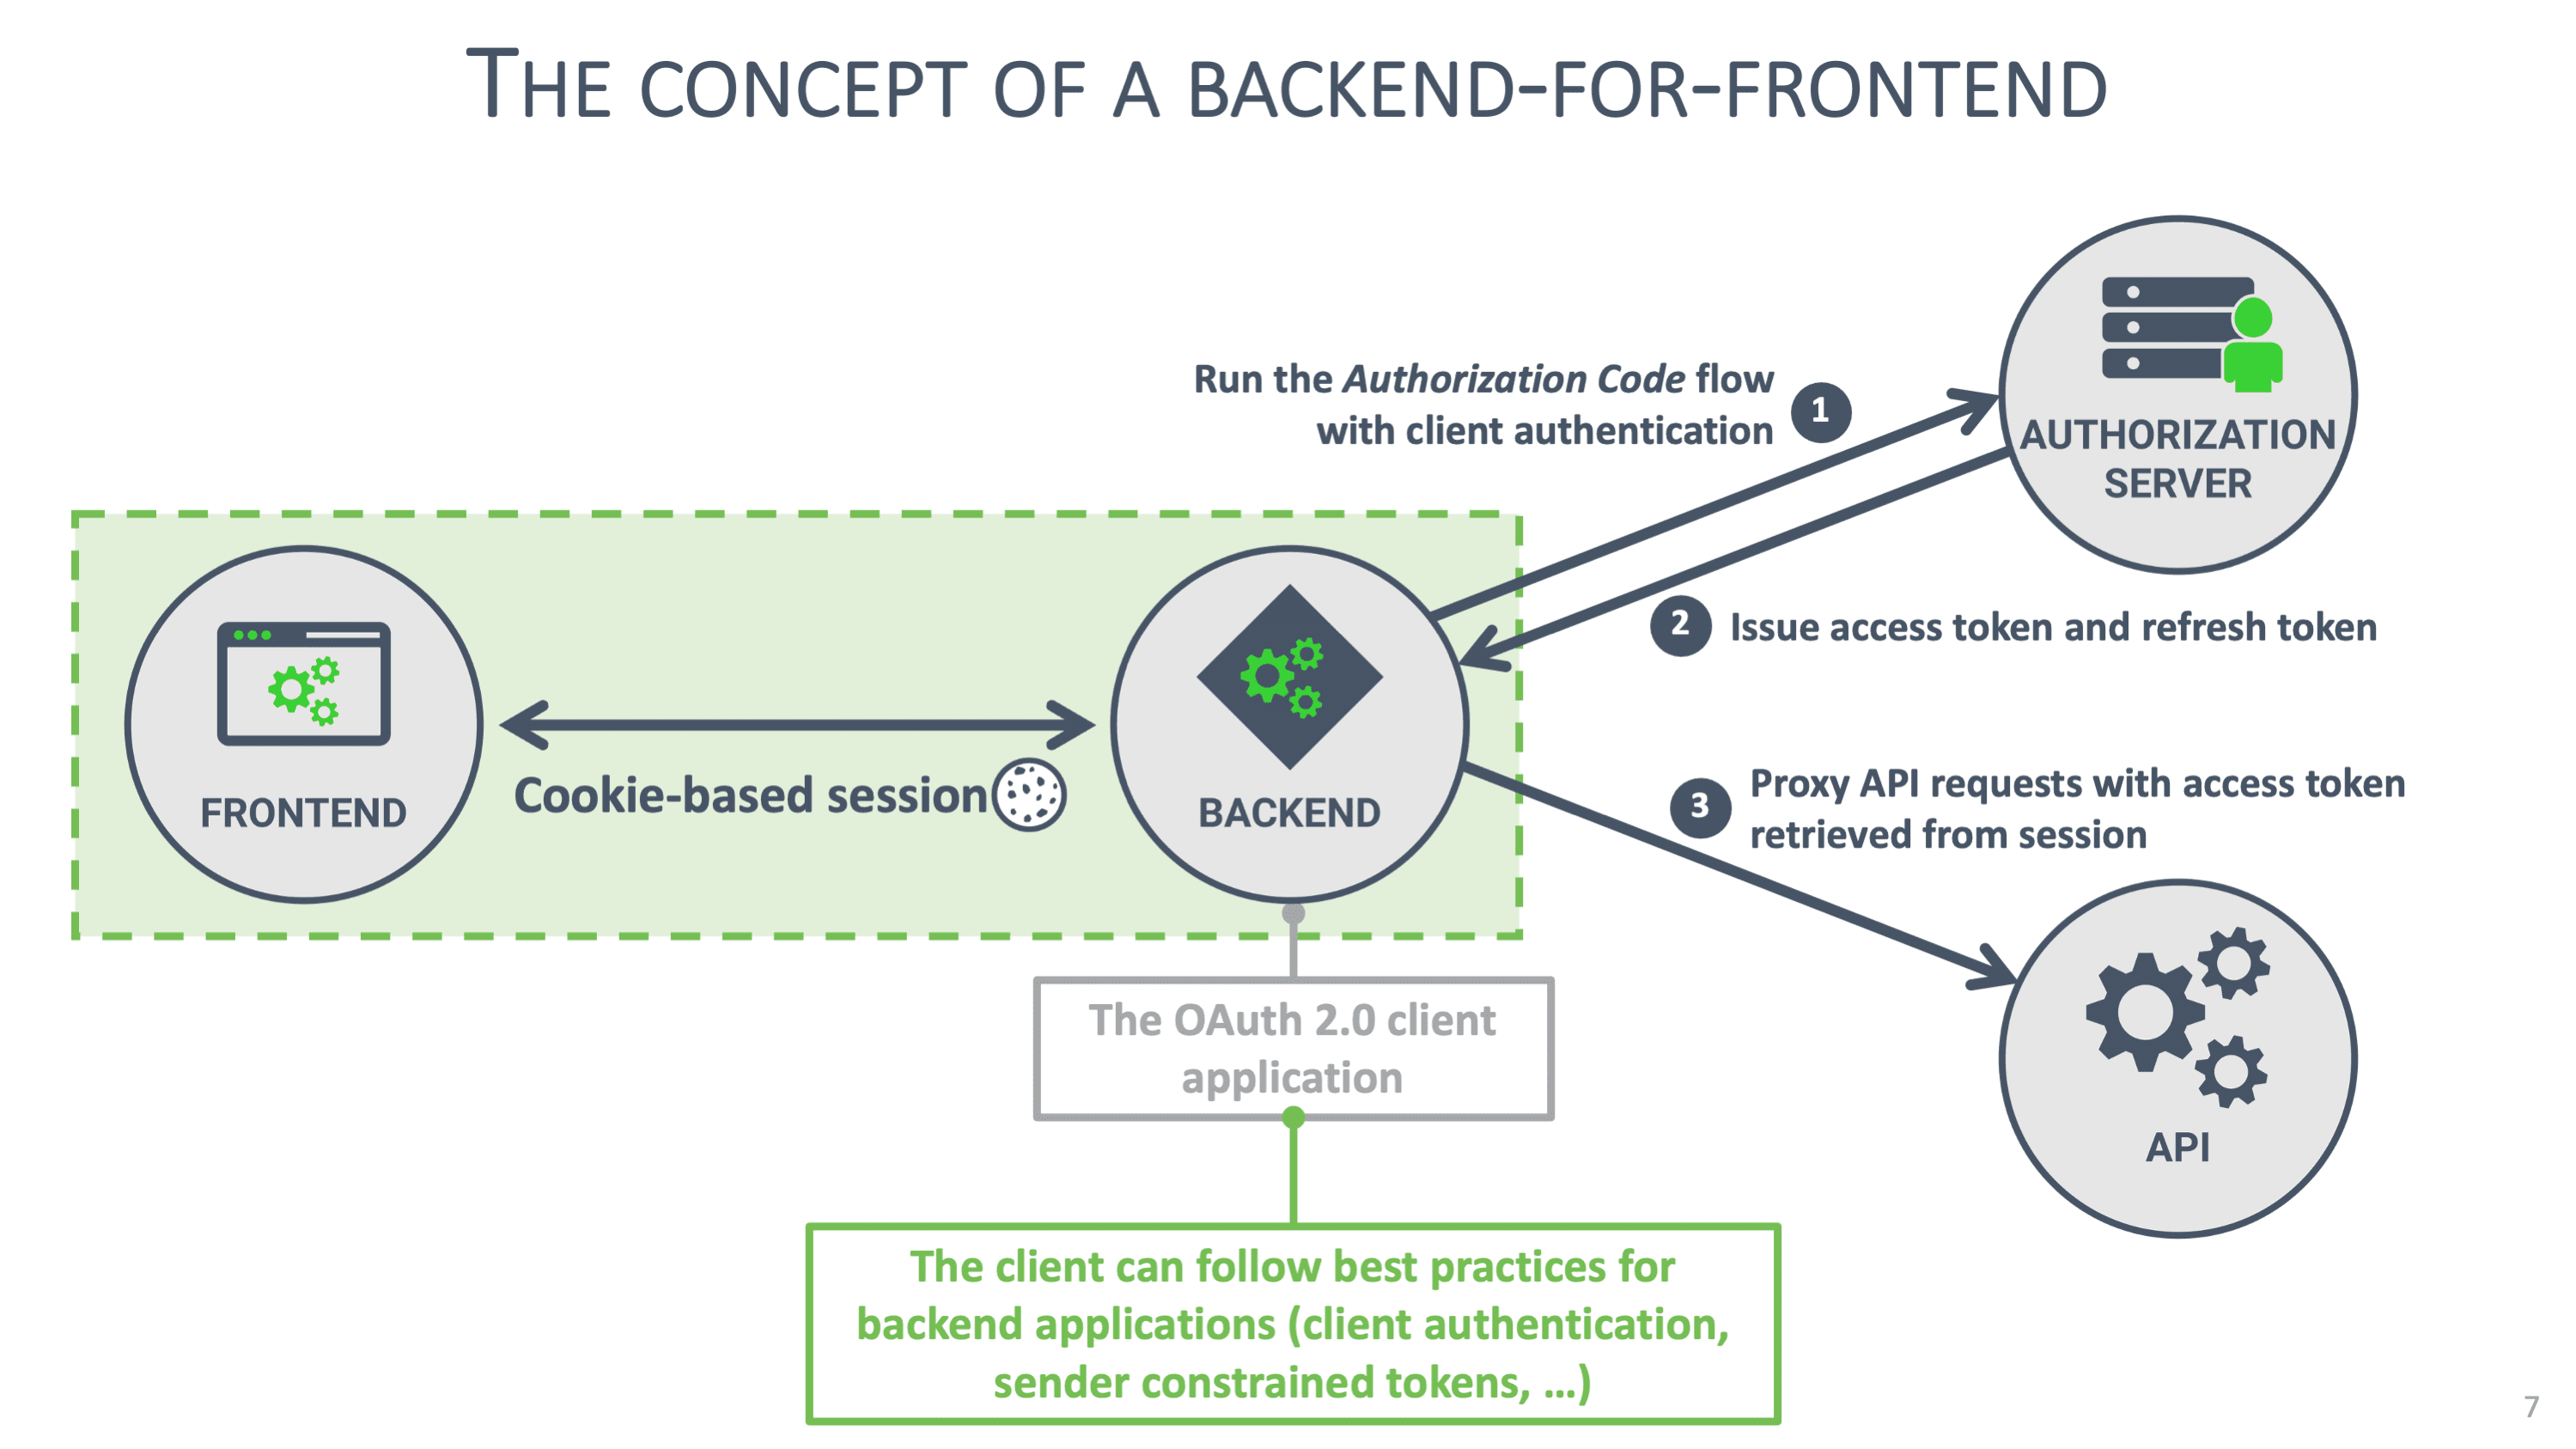 The concept of a backend-for-frontend graphic